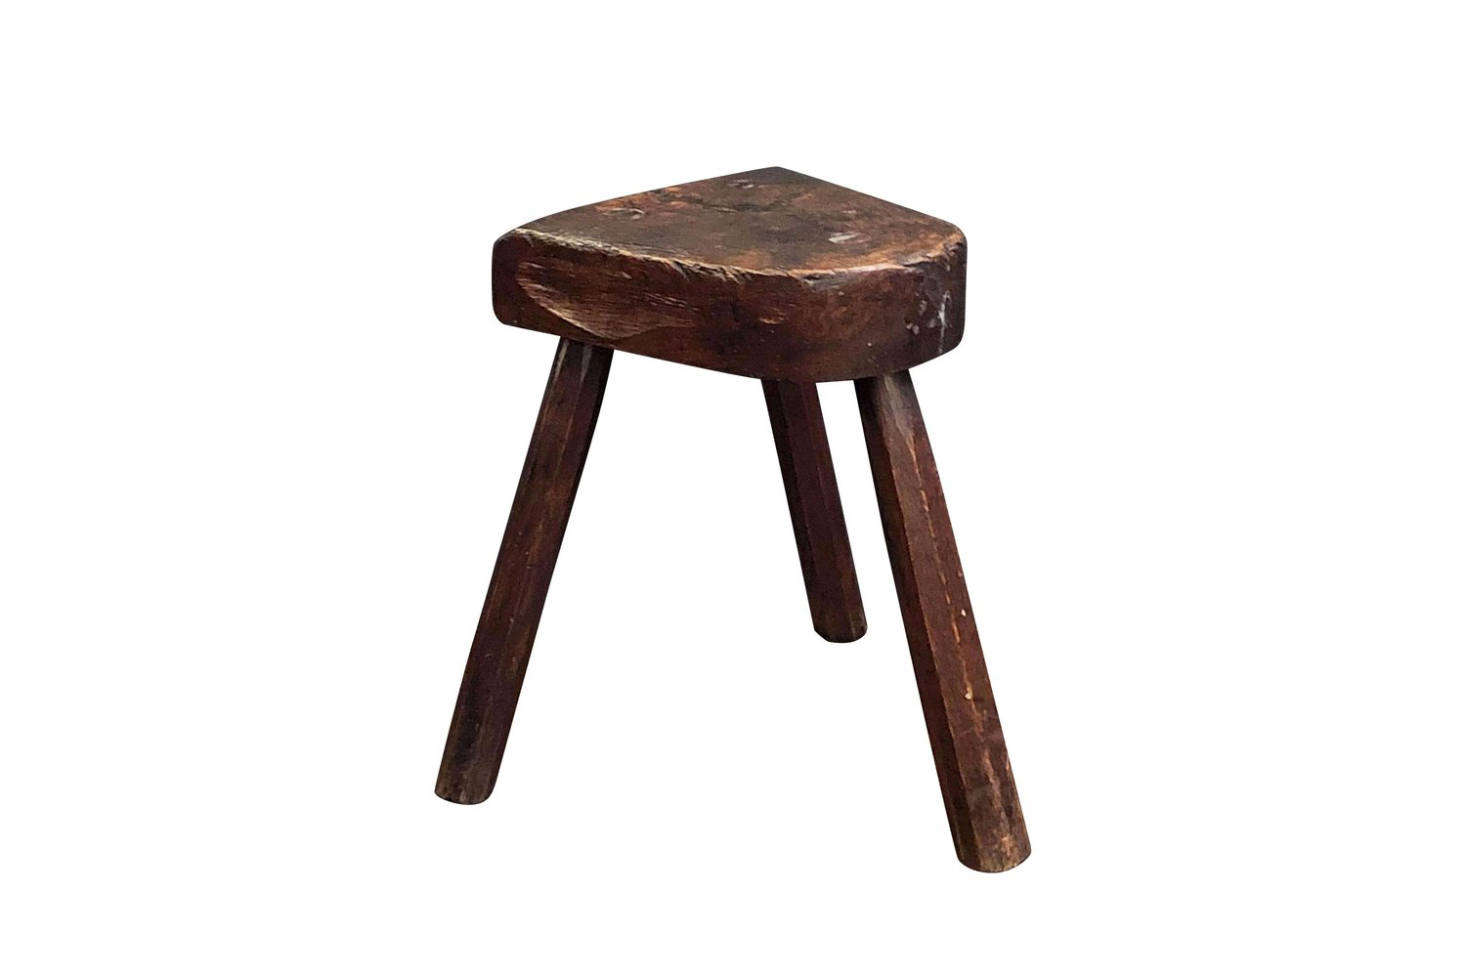 A Vintage Wooden Milking Stool can be sourced on 1st Dibs. This one is made of oak and is $1,895.